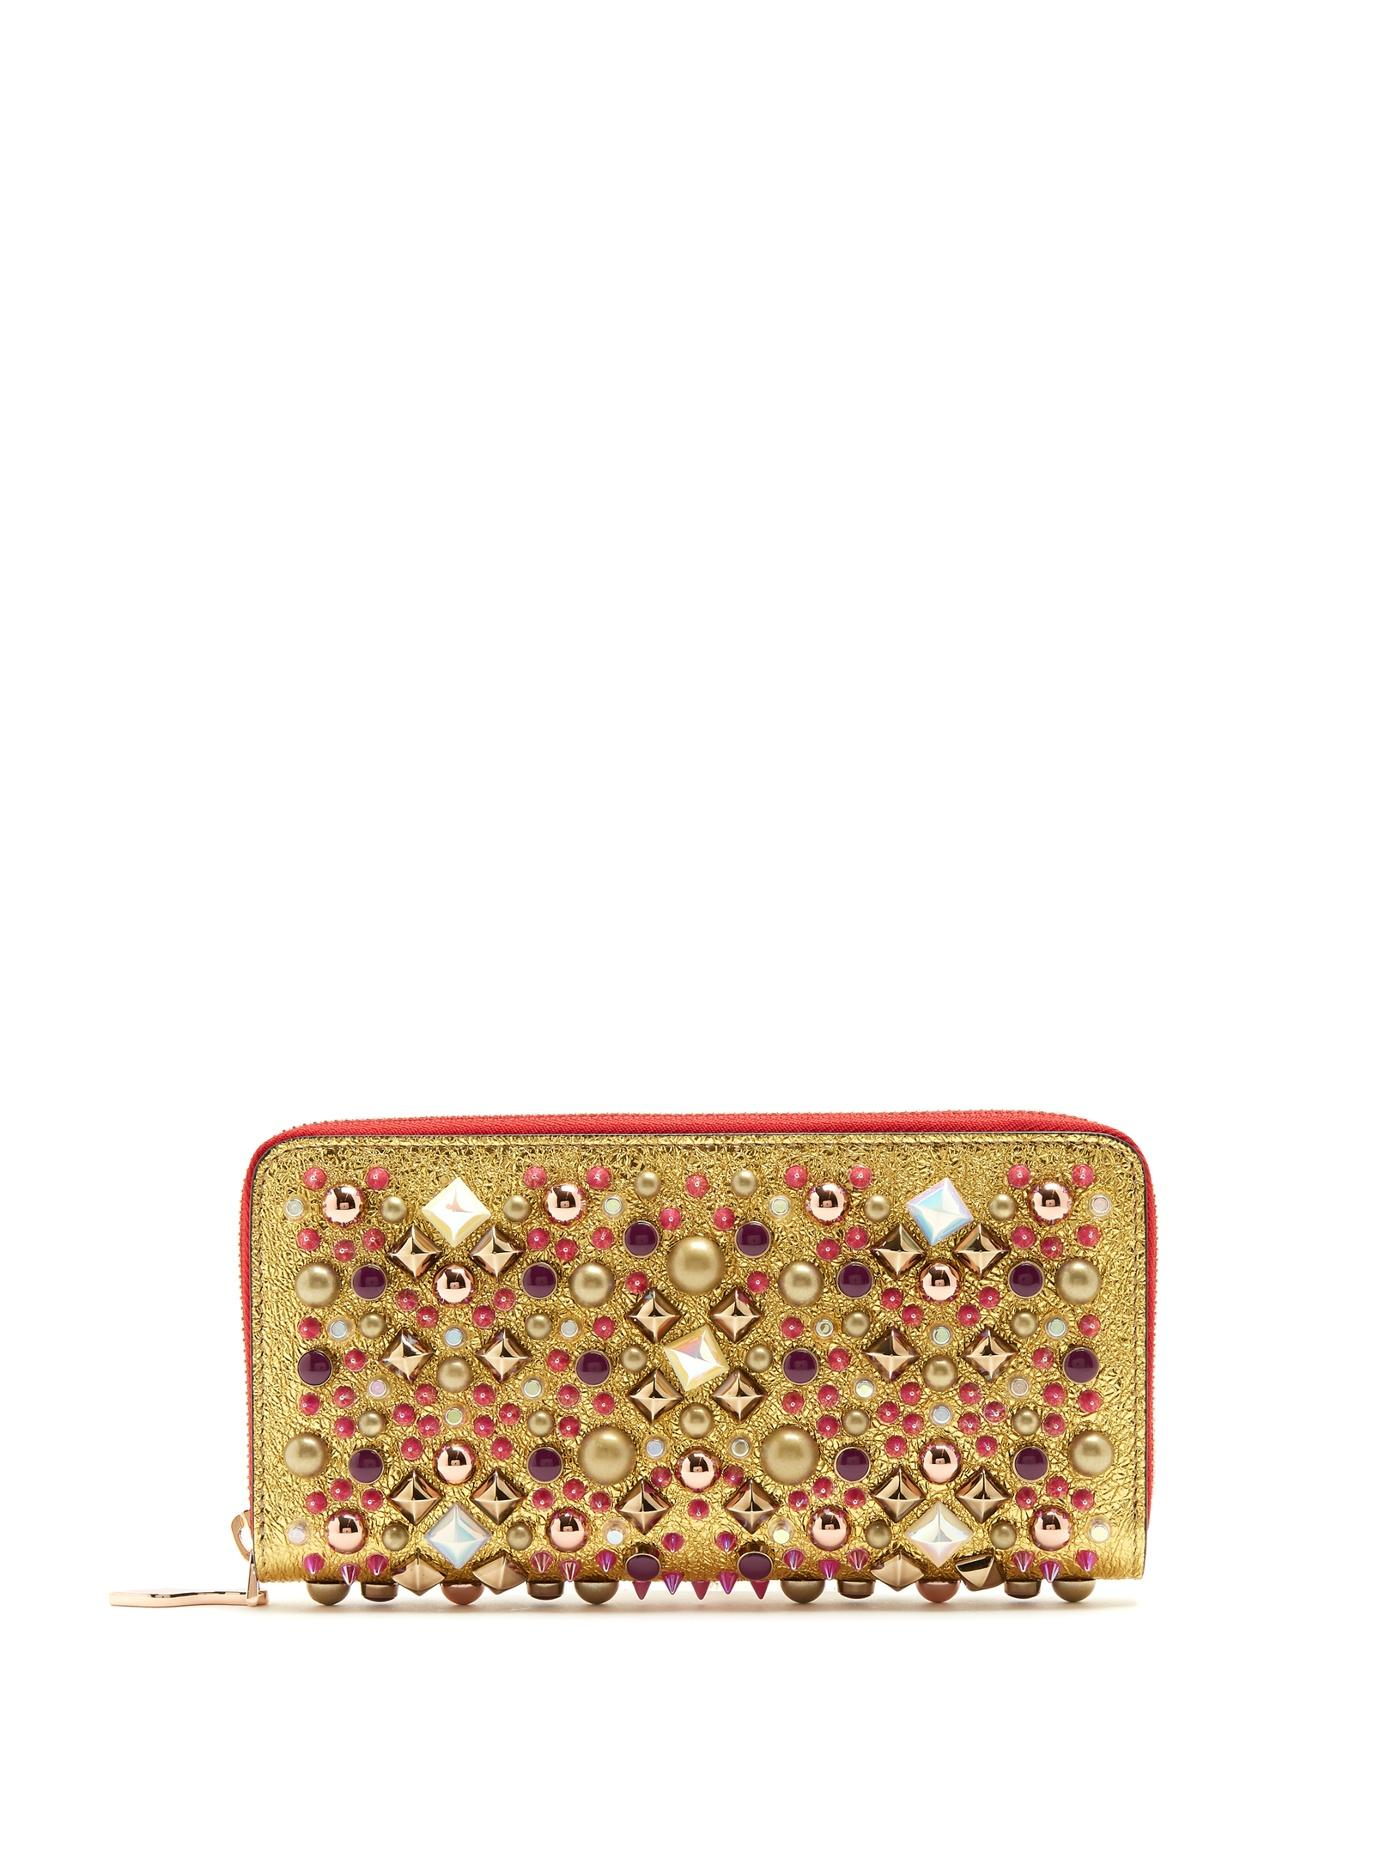 Christian Louboutin Panettone Embellished Zip-Around Leather Wallet In Gold Multi